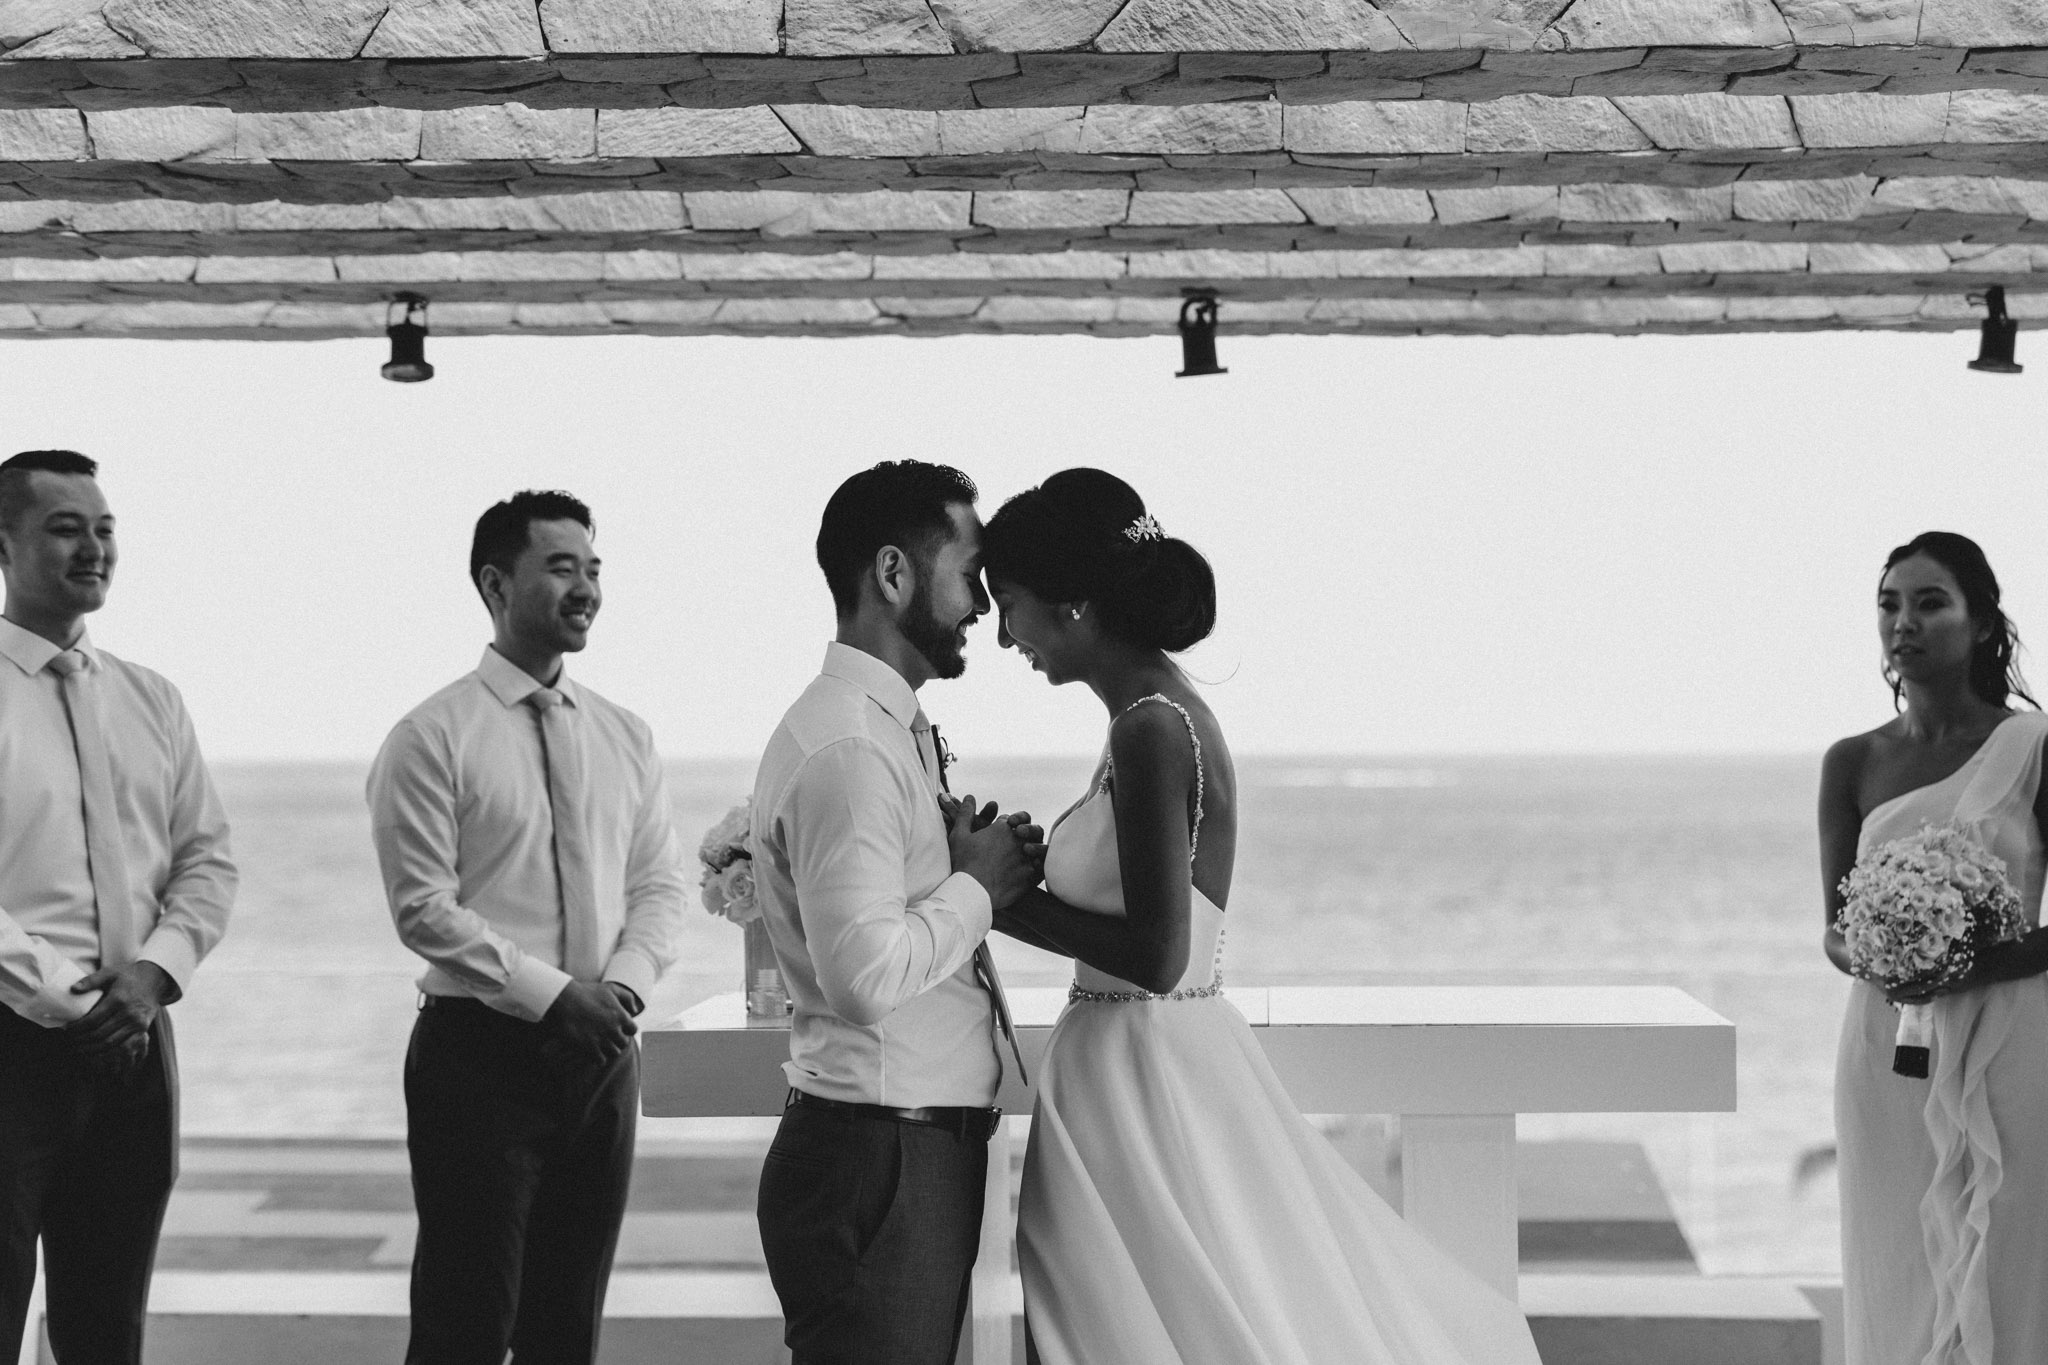 Cancun Mexico Wedding - sweet embrace at the alter